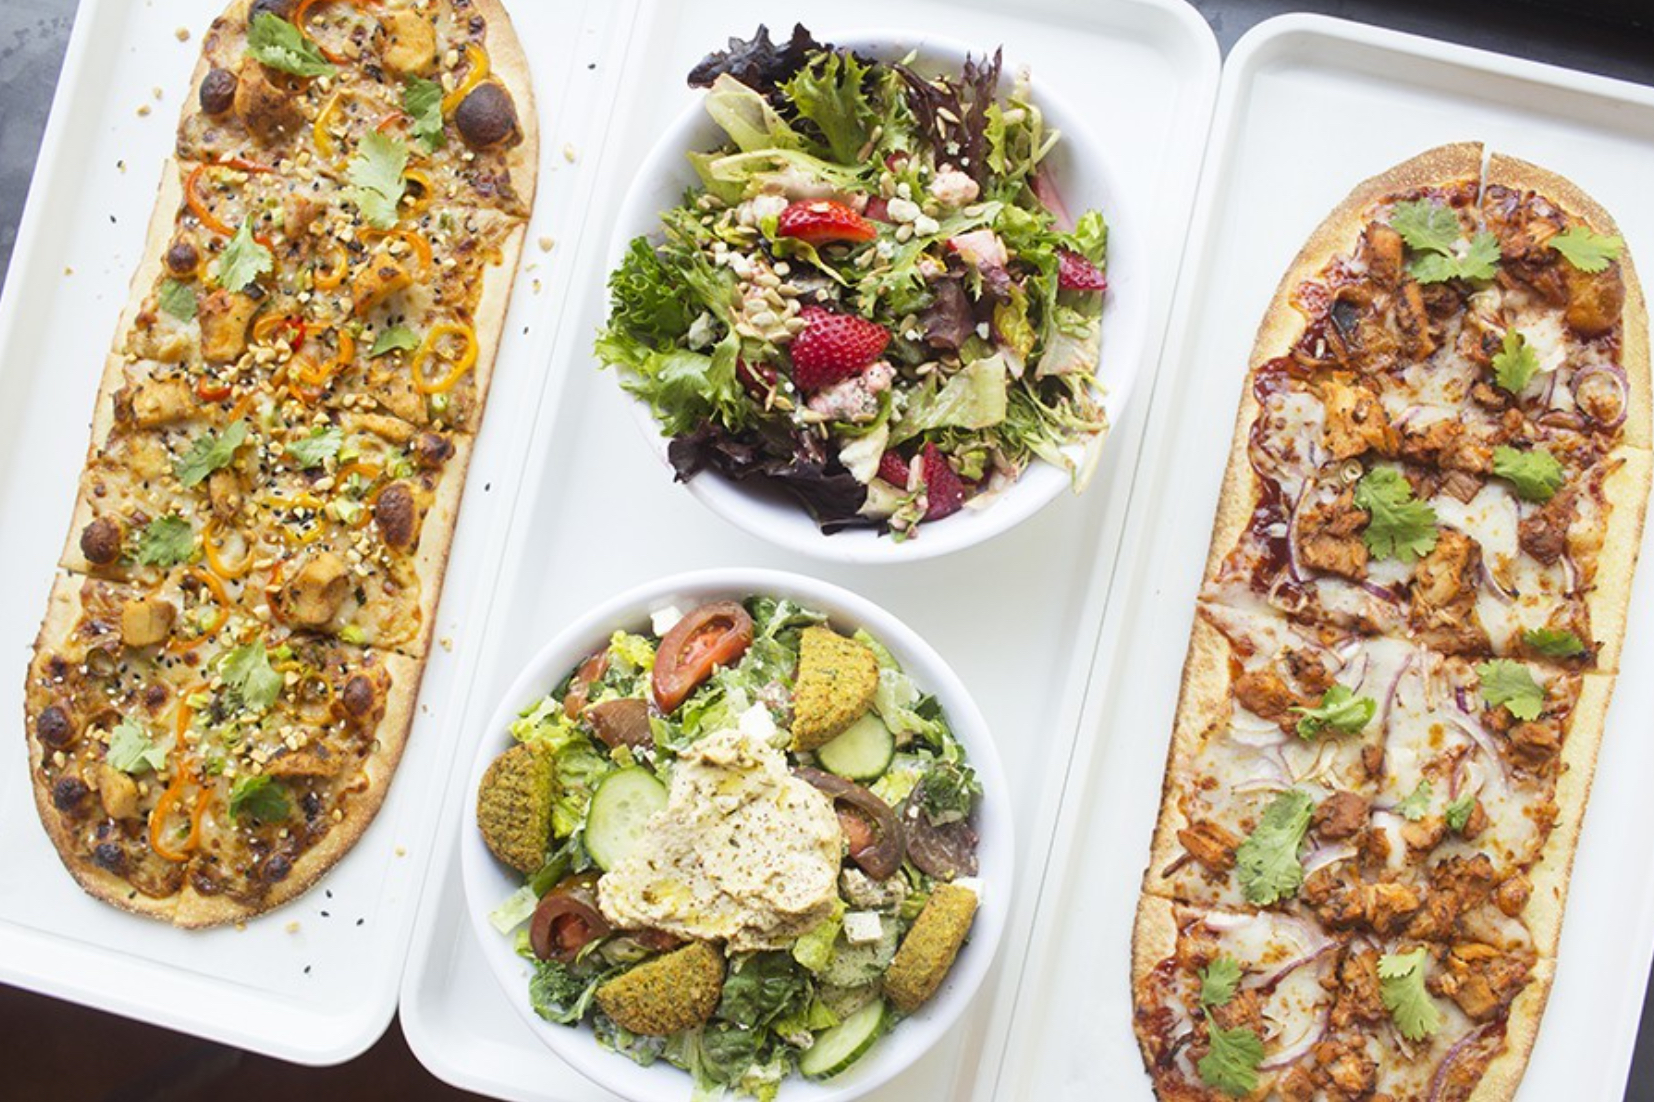 """PHOTO BY MABEL SUEN   Pies at 'Zza include the """"Thai Dye"""" (left) and """"Postrio"""" (right), as well salads and even a poke bowl."""